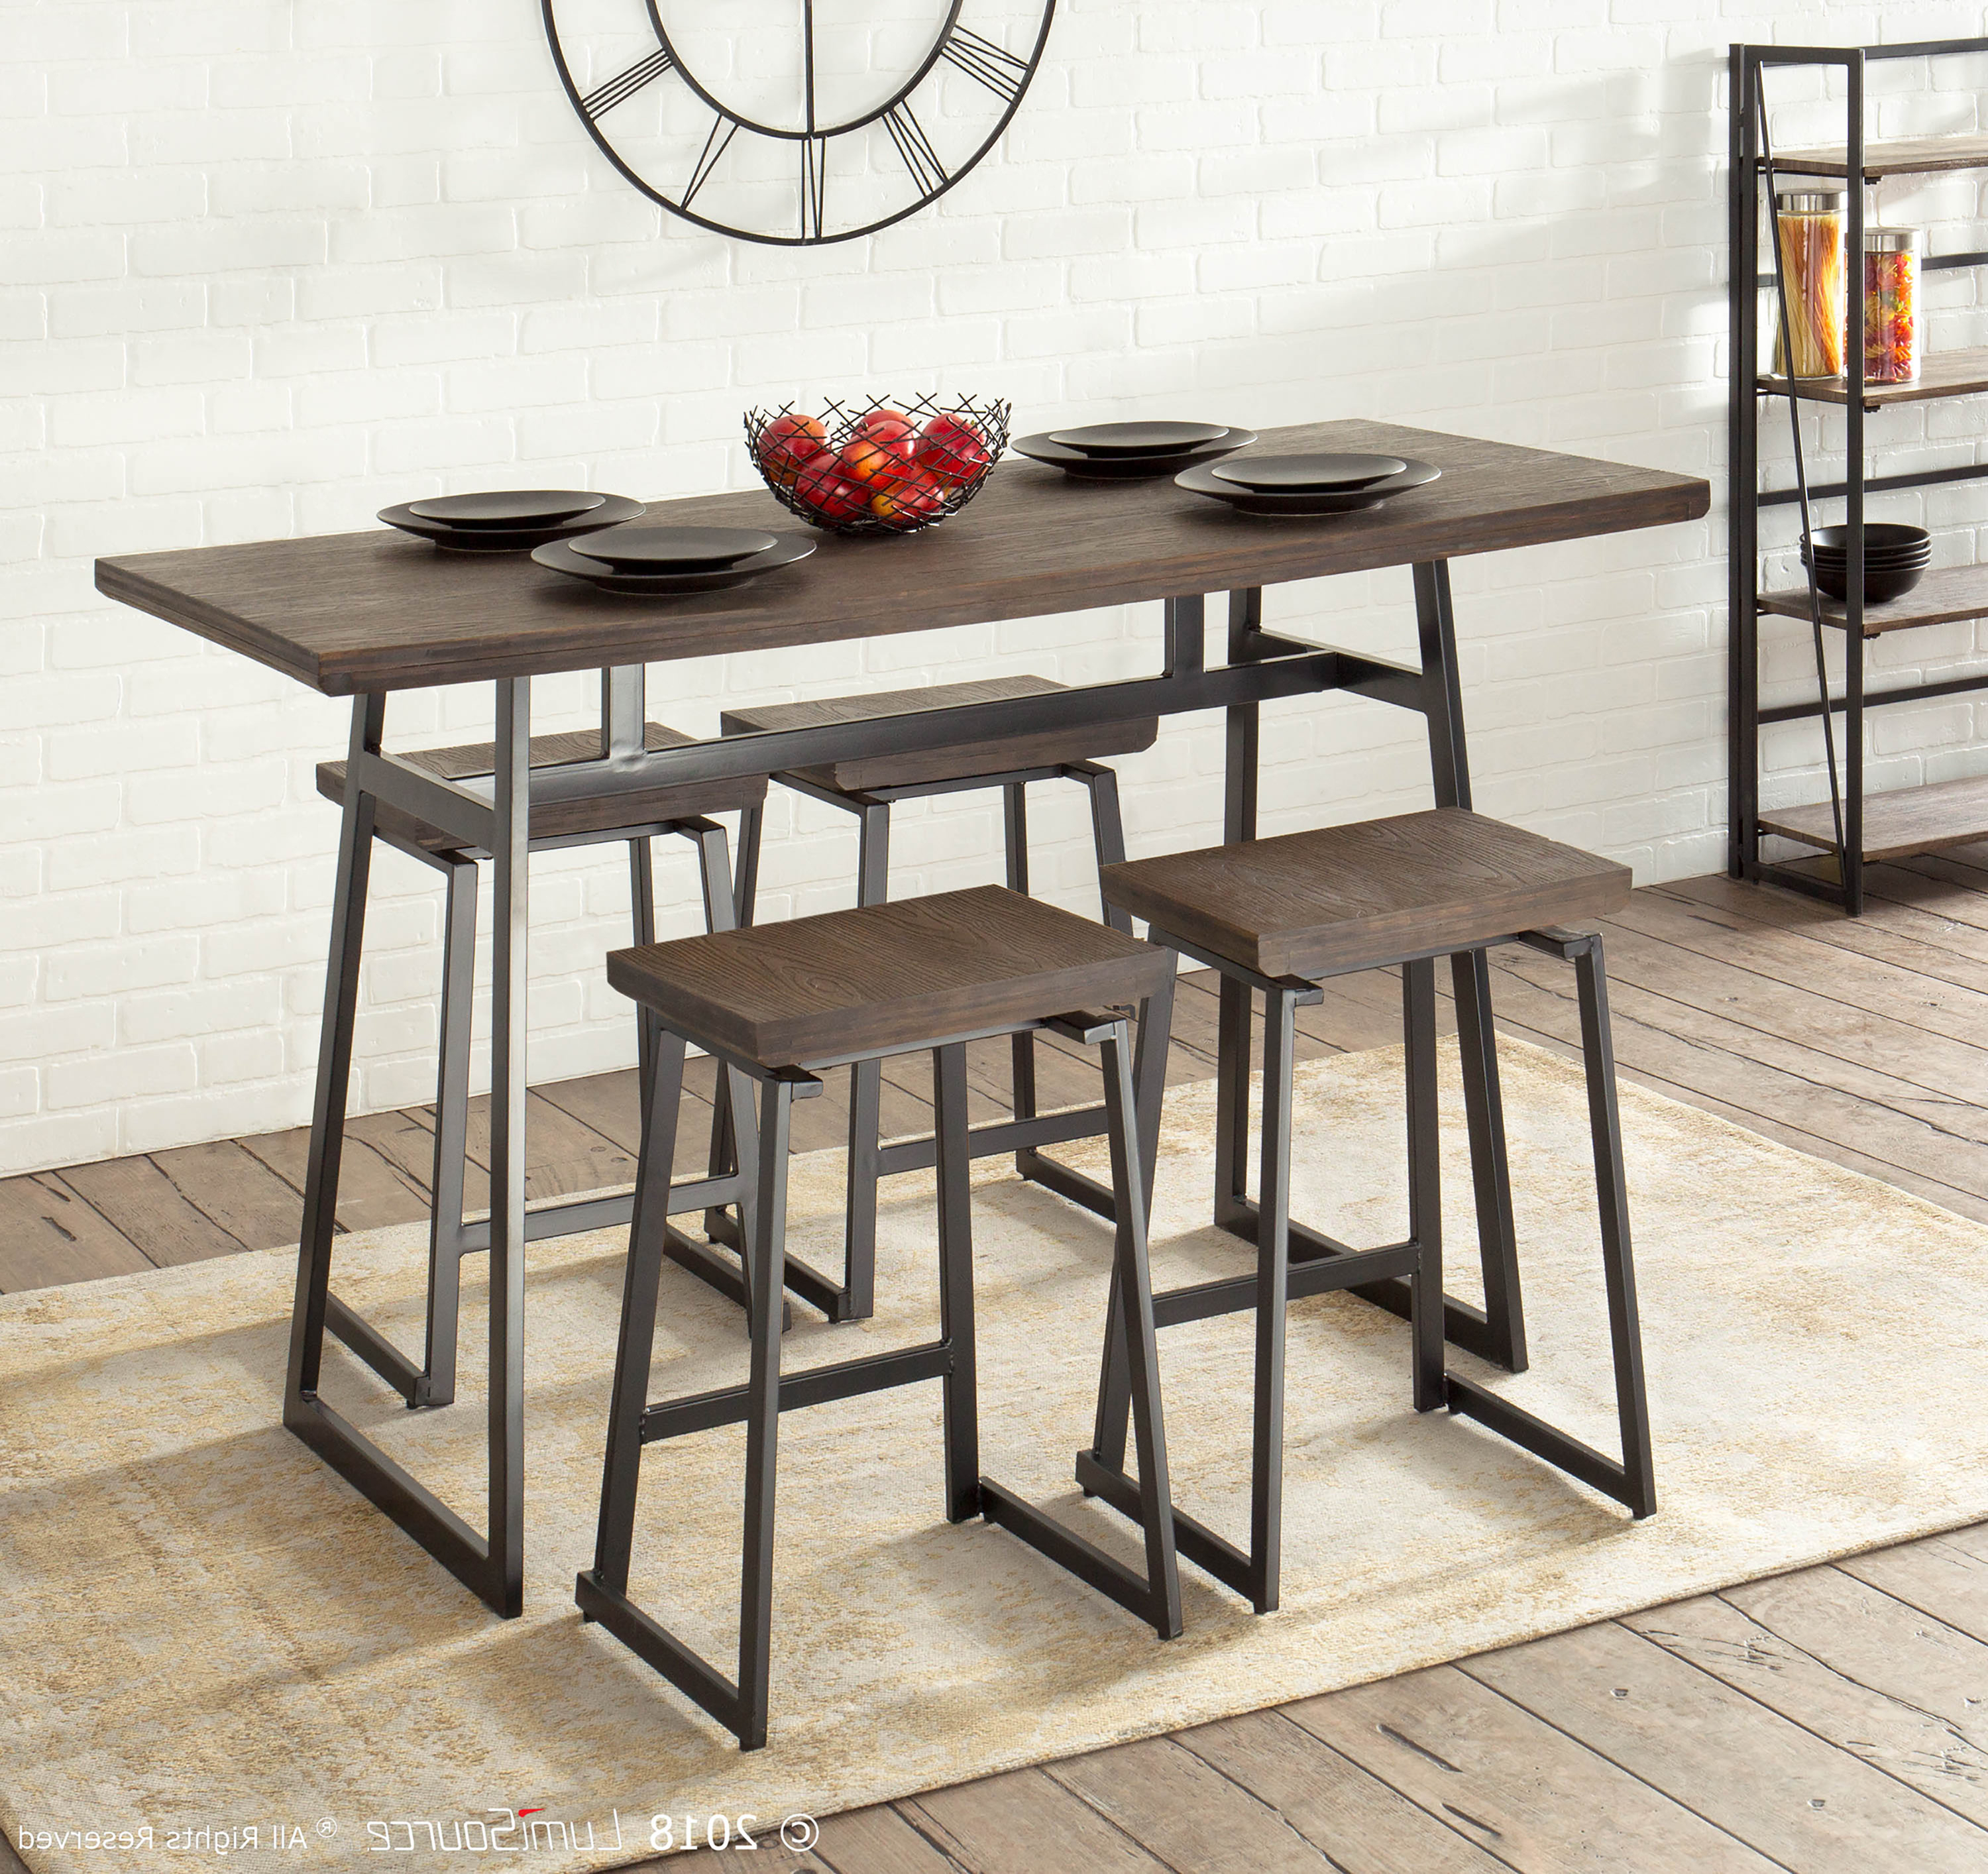 Cassiopeia Industrial 5 Piece Counter Height Dining Set & Reviews With Regard To Most Up To Date Weatherholt Dining Tables (View 9 of 25)